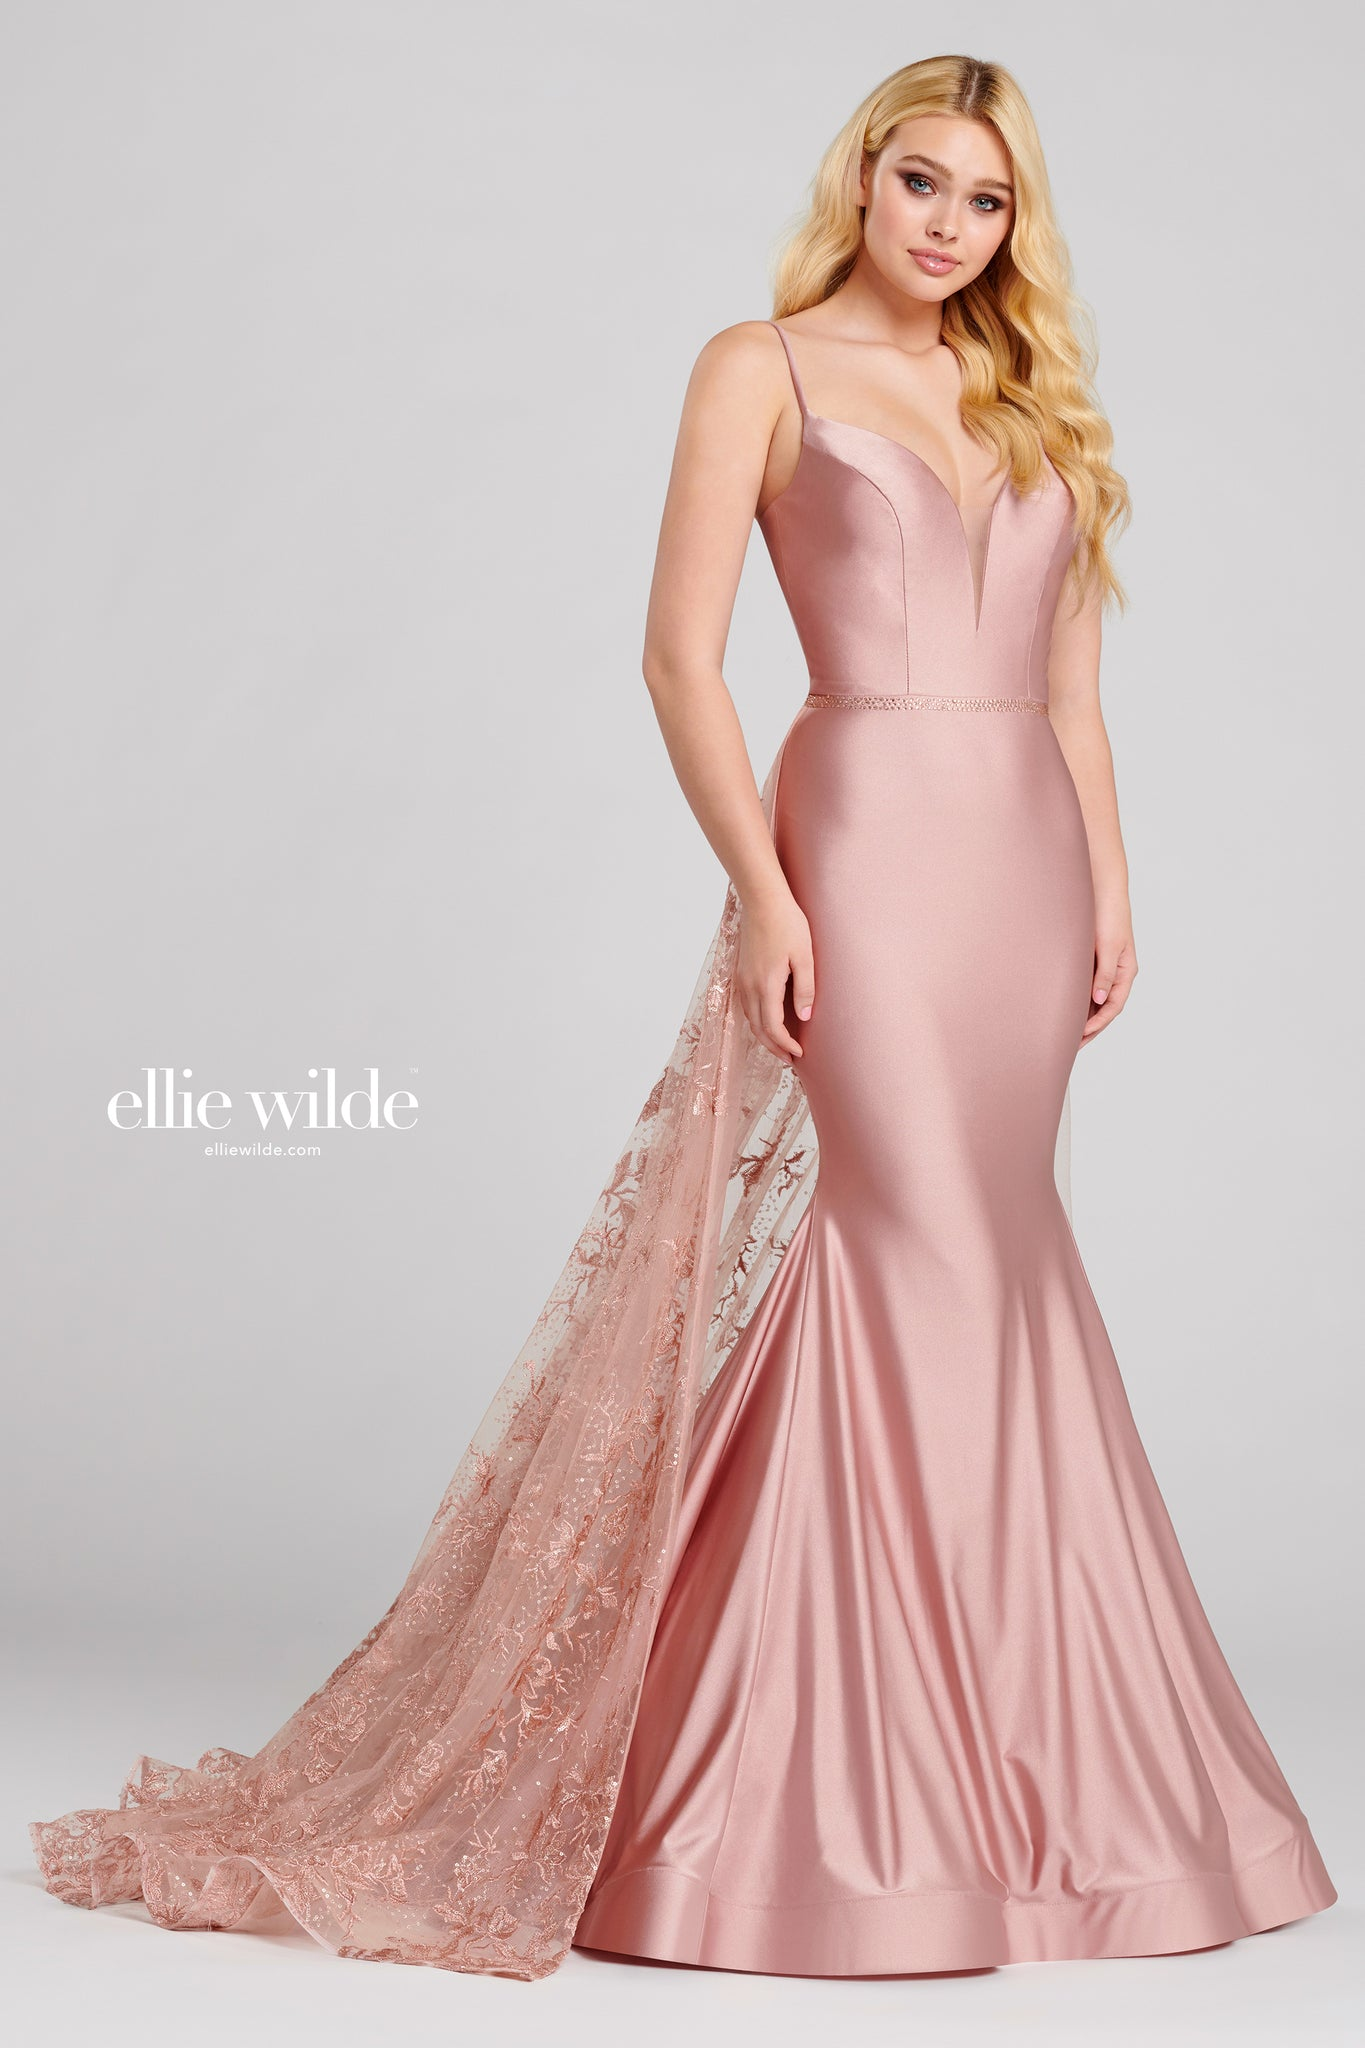 Ellie Wilde Rose Satin Ball Gown - Gissings Boutique